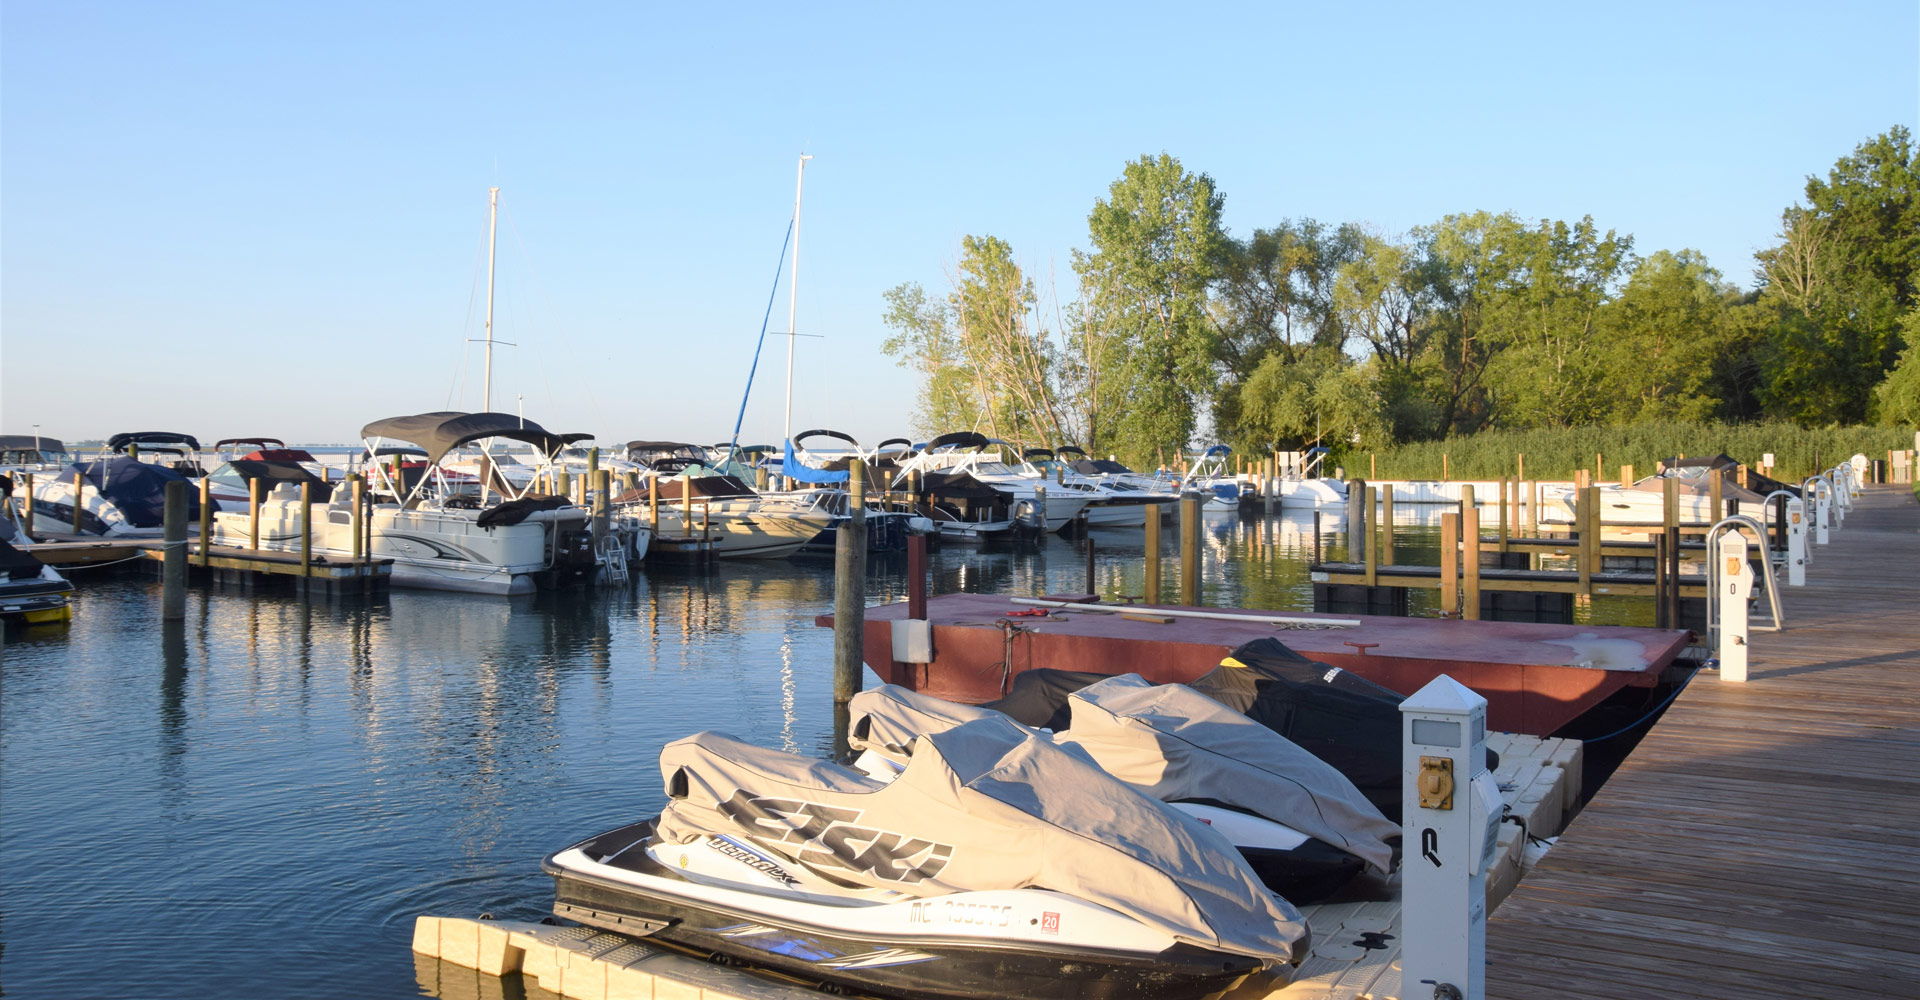 Jet-ski and boat docks available